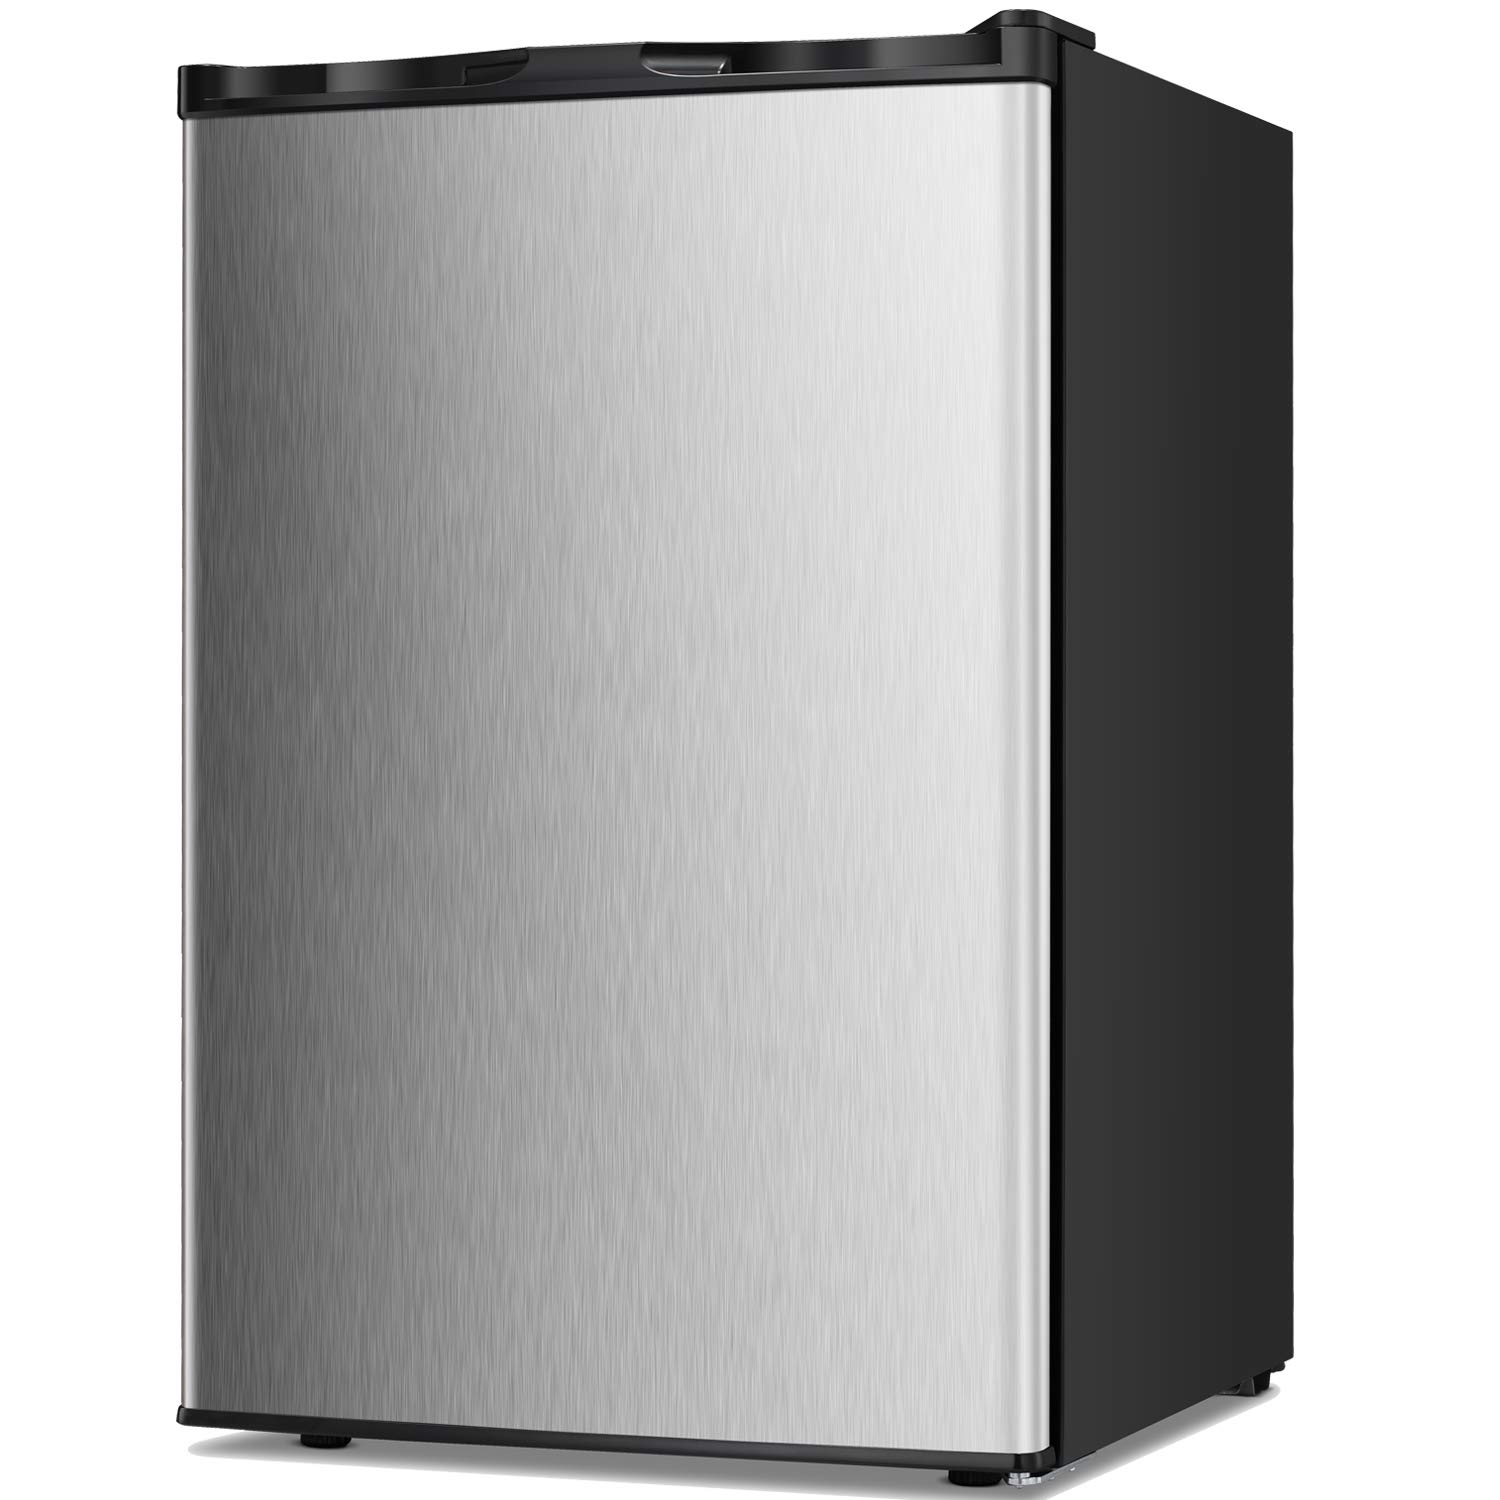 TAVATA Compact Upright Freezer Single Door Reversible Stainless Steel Door, Compact Adjustable Removable Shelves for Home Office (Silver, 3.0 cu.ft)